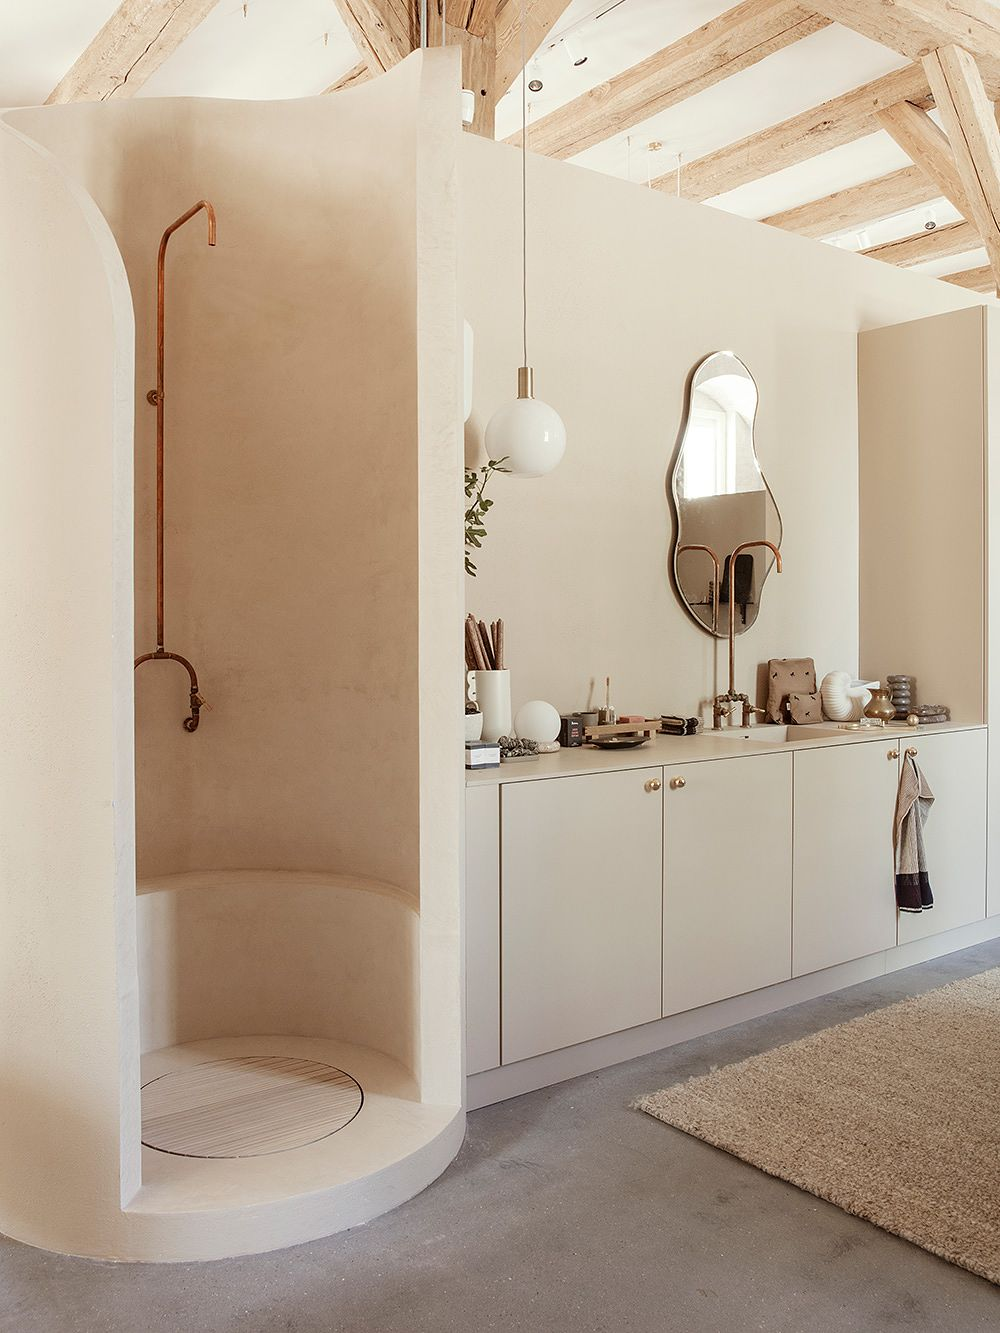 The Home of Ferm Living